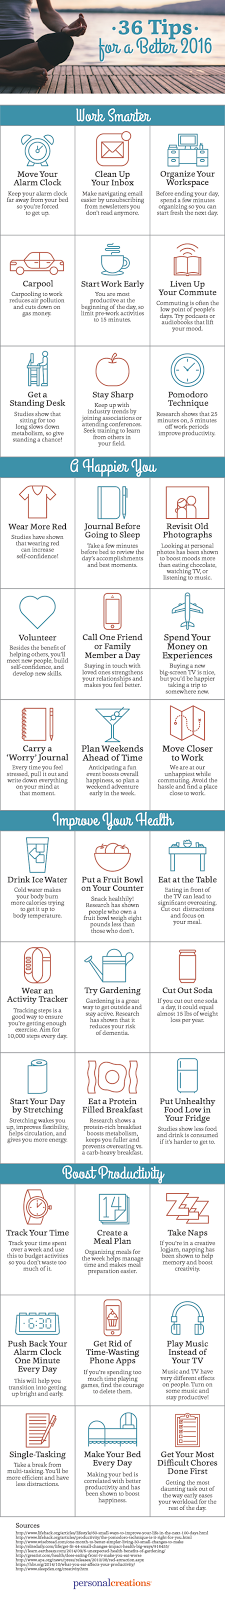 36 Easy Self-improvement Tips for Make Life Better and Happier